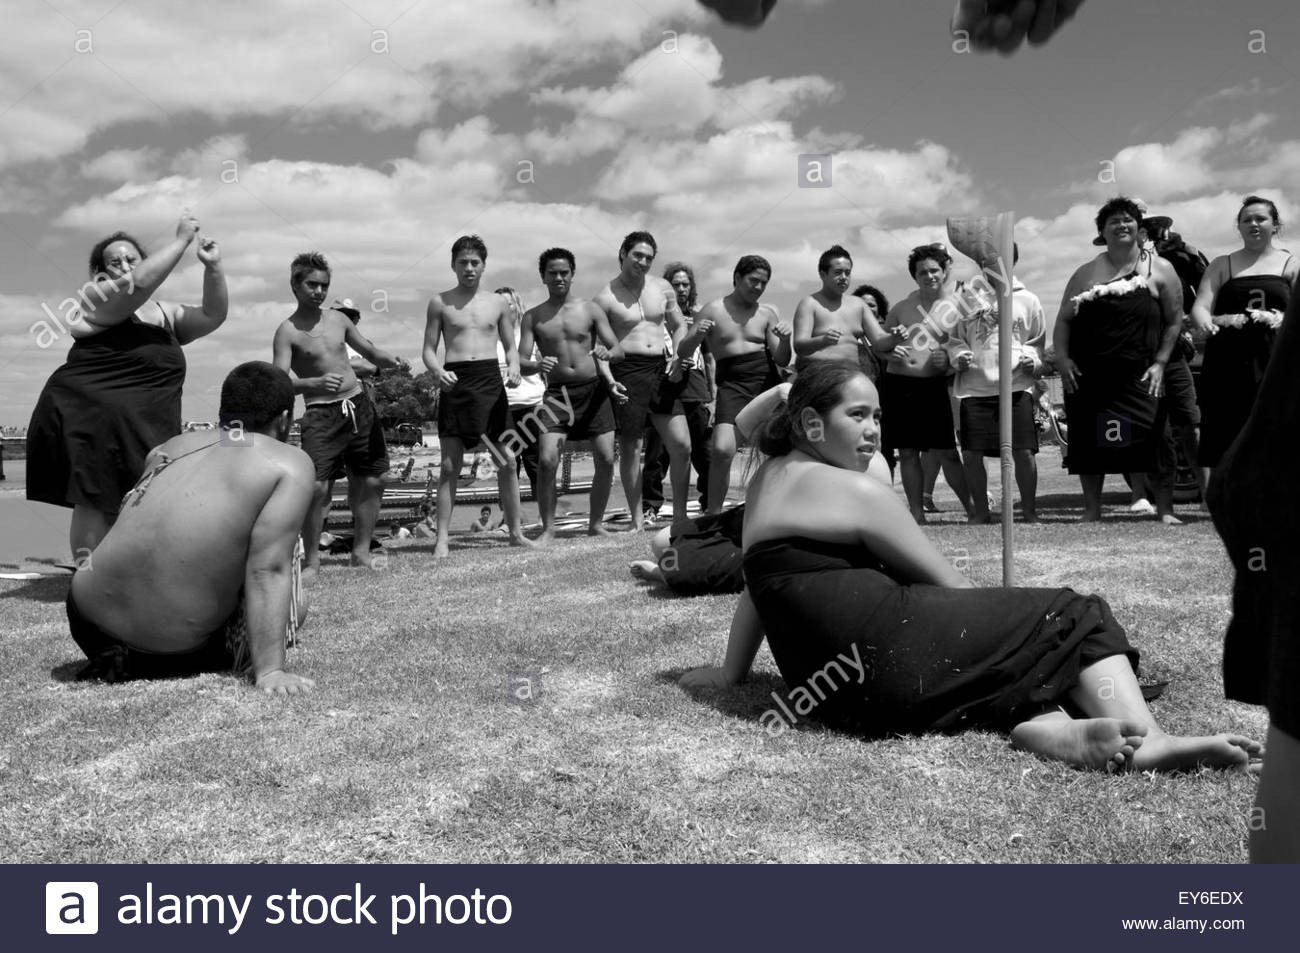 A group of Maori performs a traditional dance during Waitangi Day annual commemorations on Waitangi Treaty Grounds, Stock Photo